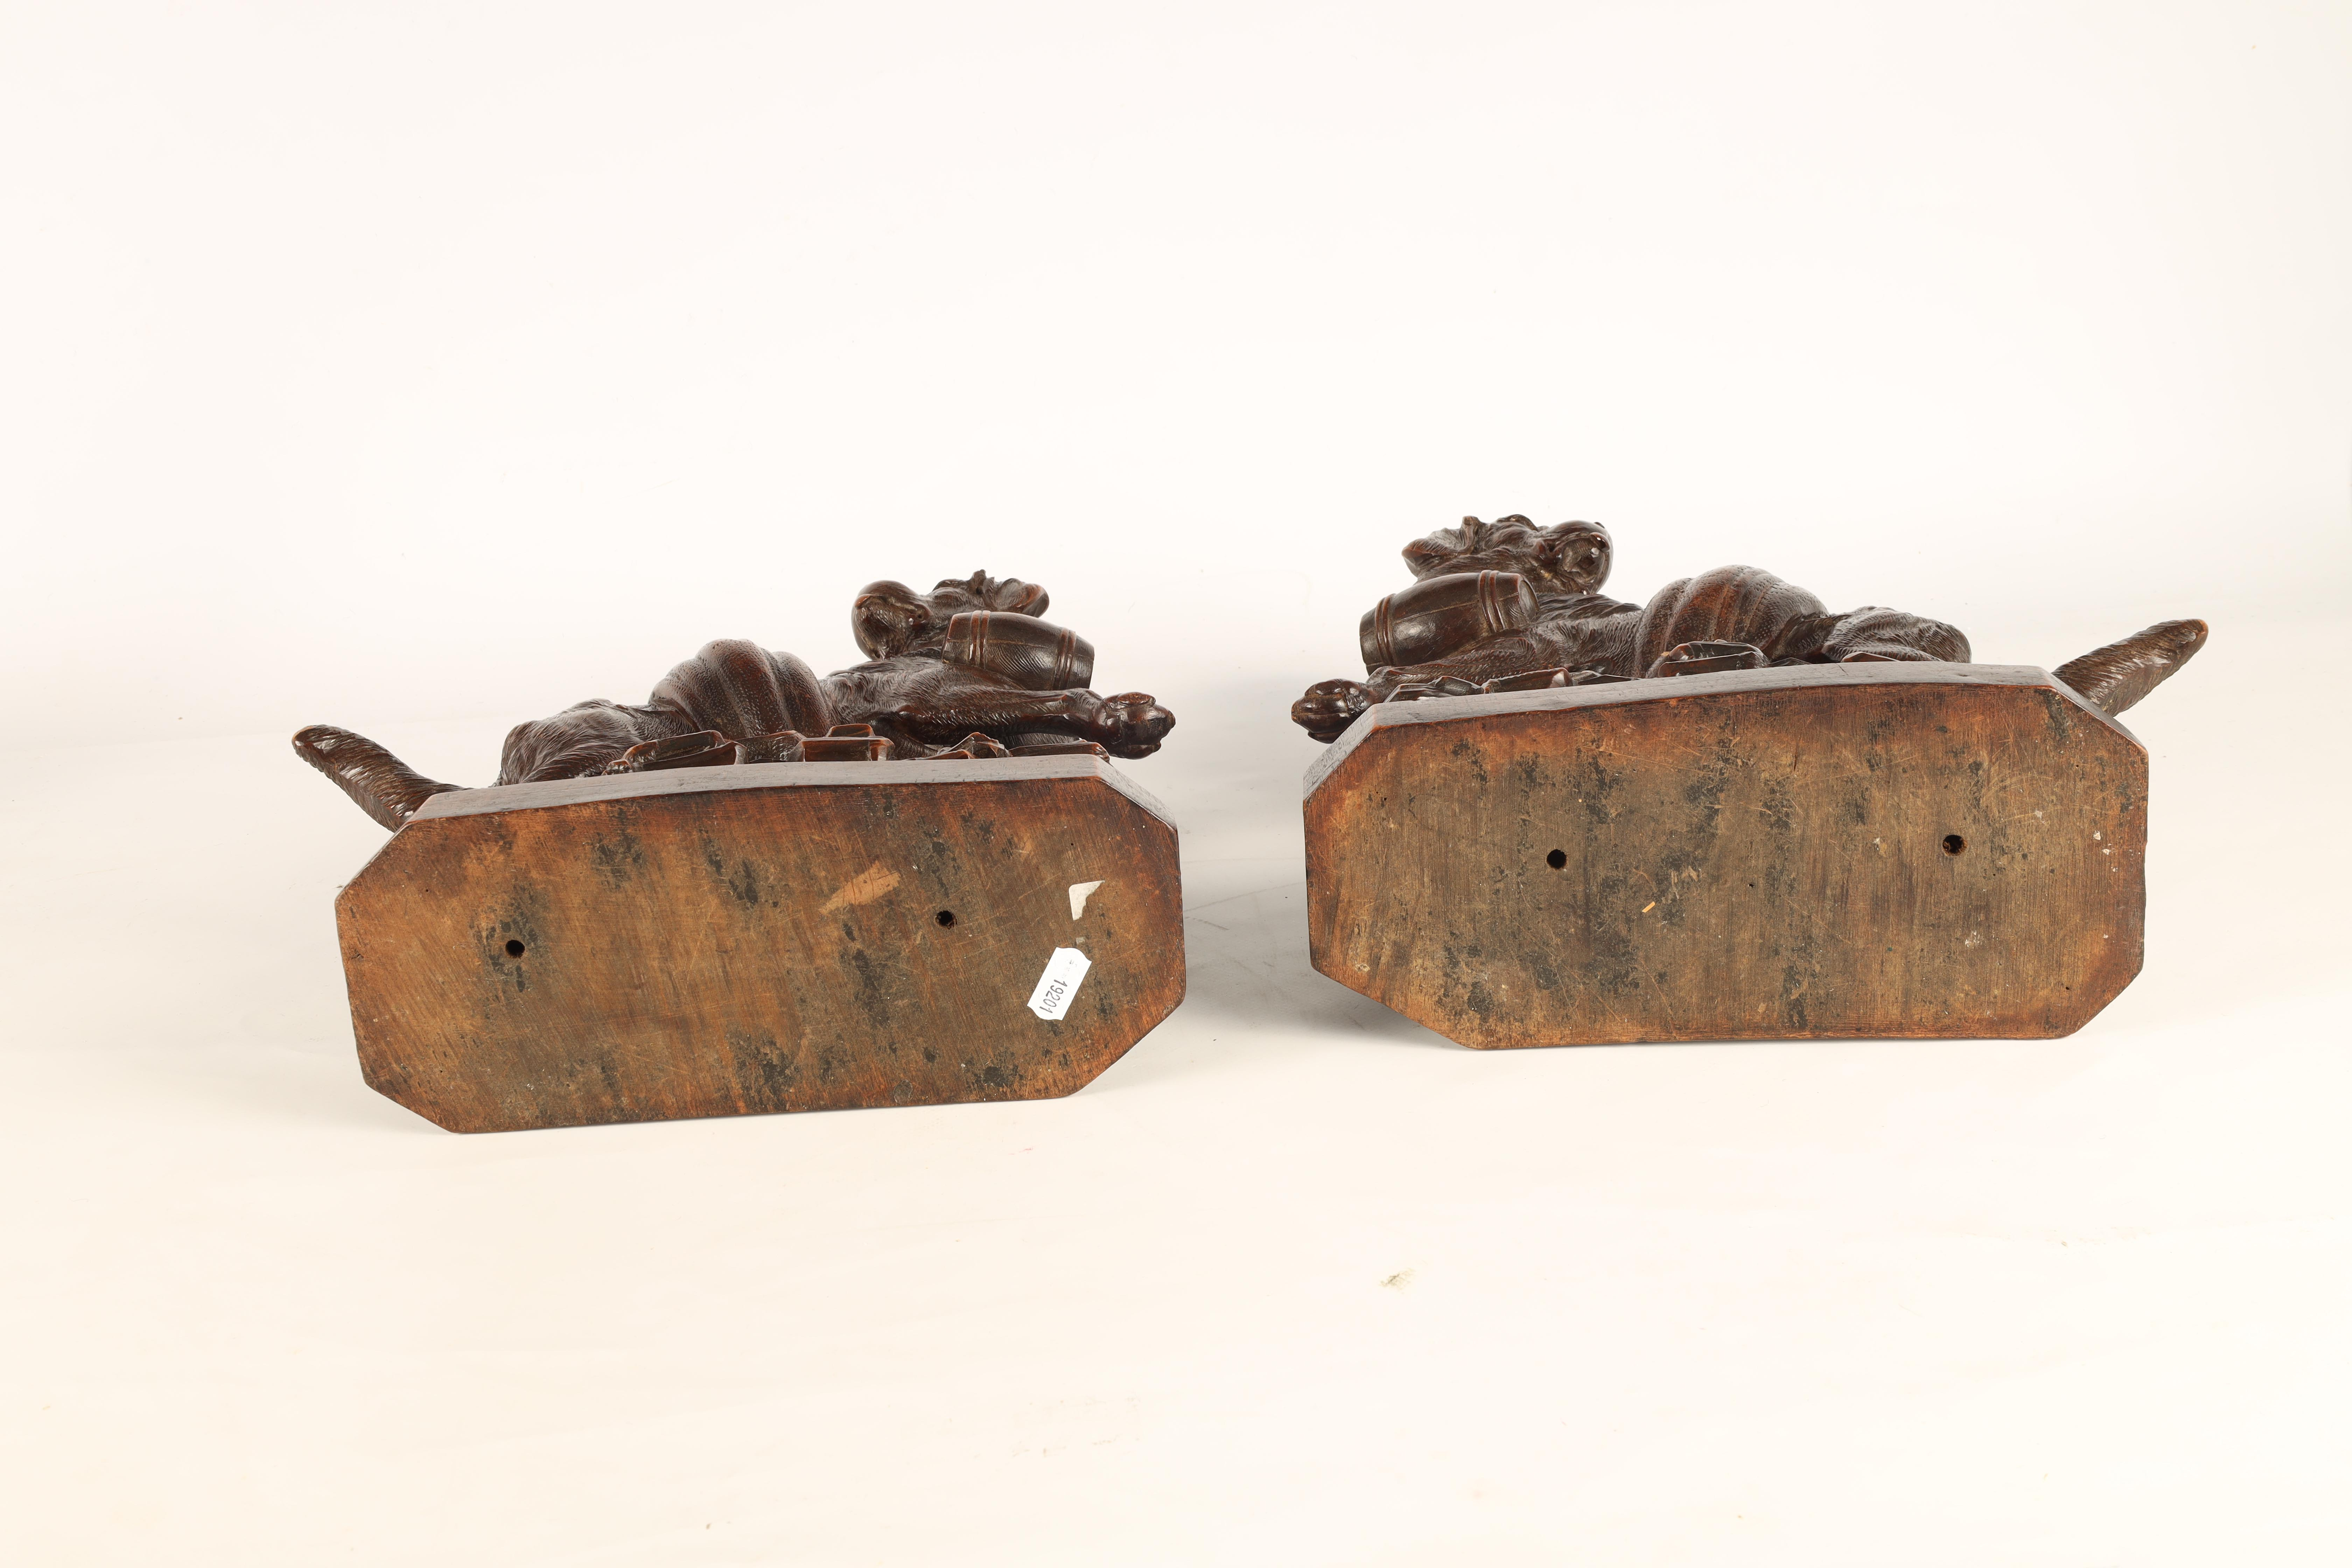 A GOOD QUALITY PAIR OF LATE 19TH CENTURY BLACK FOREST CARVED SCULPTURES modelled as Saint Bernards - Image 6 of 6